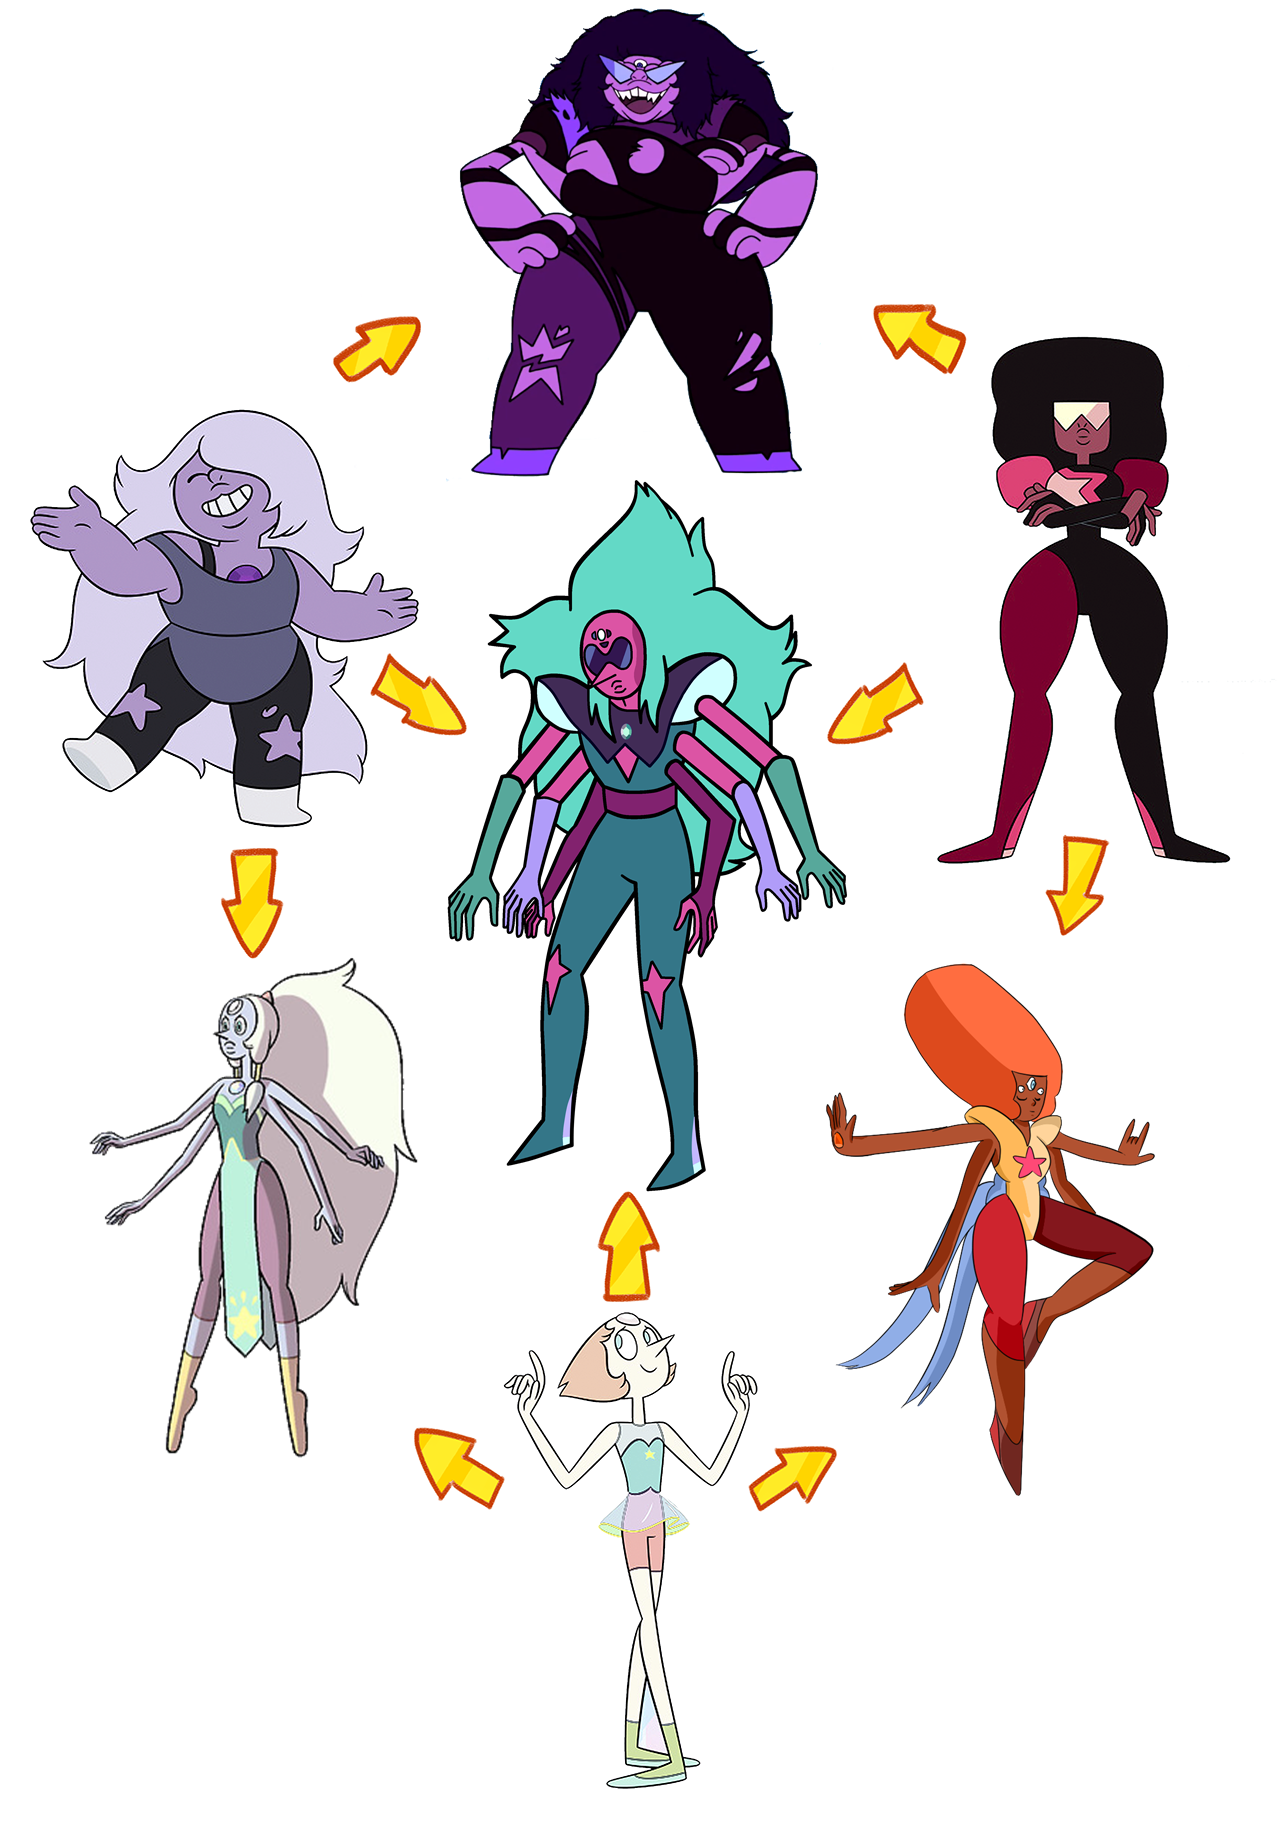 The Crystal Gems Fusions By Bfdifan1234 On Deviantart Steven Universe Fusion Steven Universe Theme Song Steven Universe